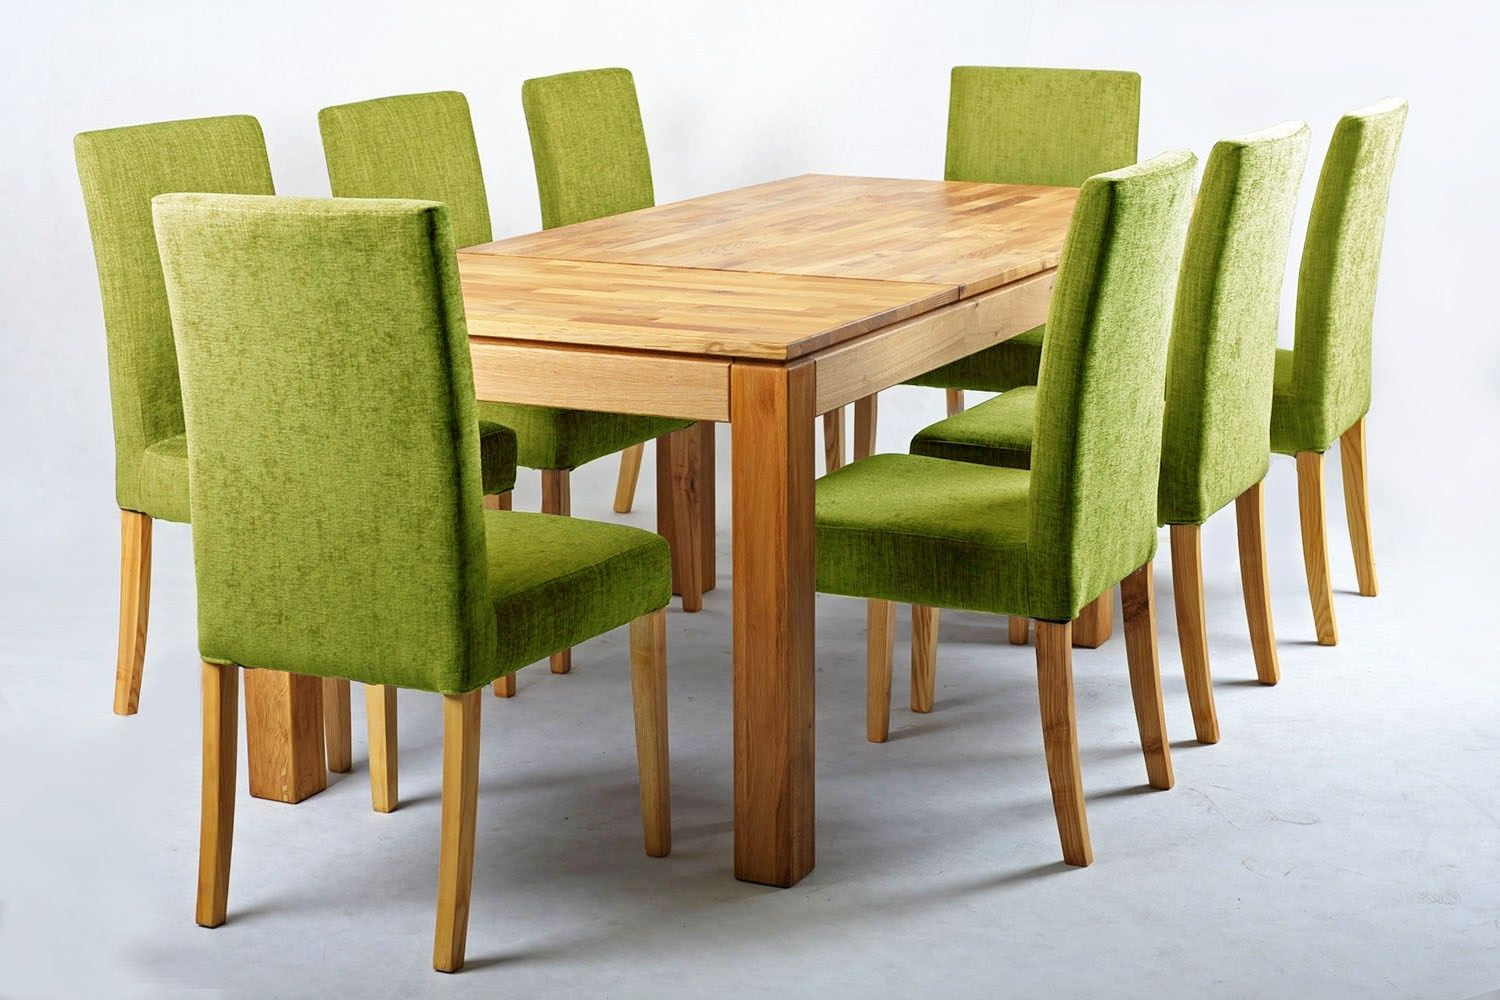 Lime Green Leather Dining Room Chairs  Httpenricbataller Mesmerizing Green Leather Dining Room Chairs Design Ideas